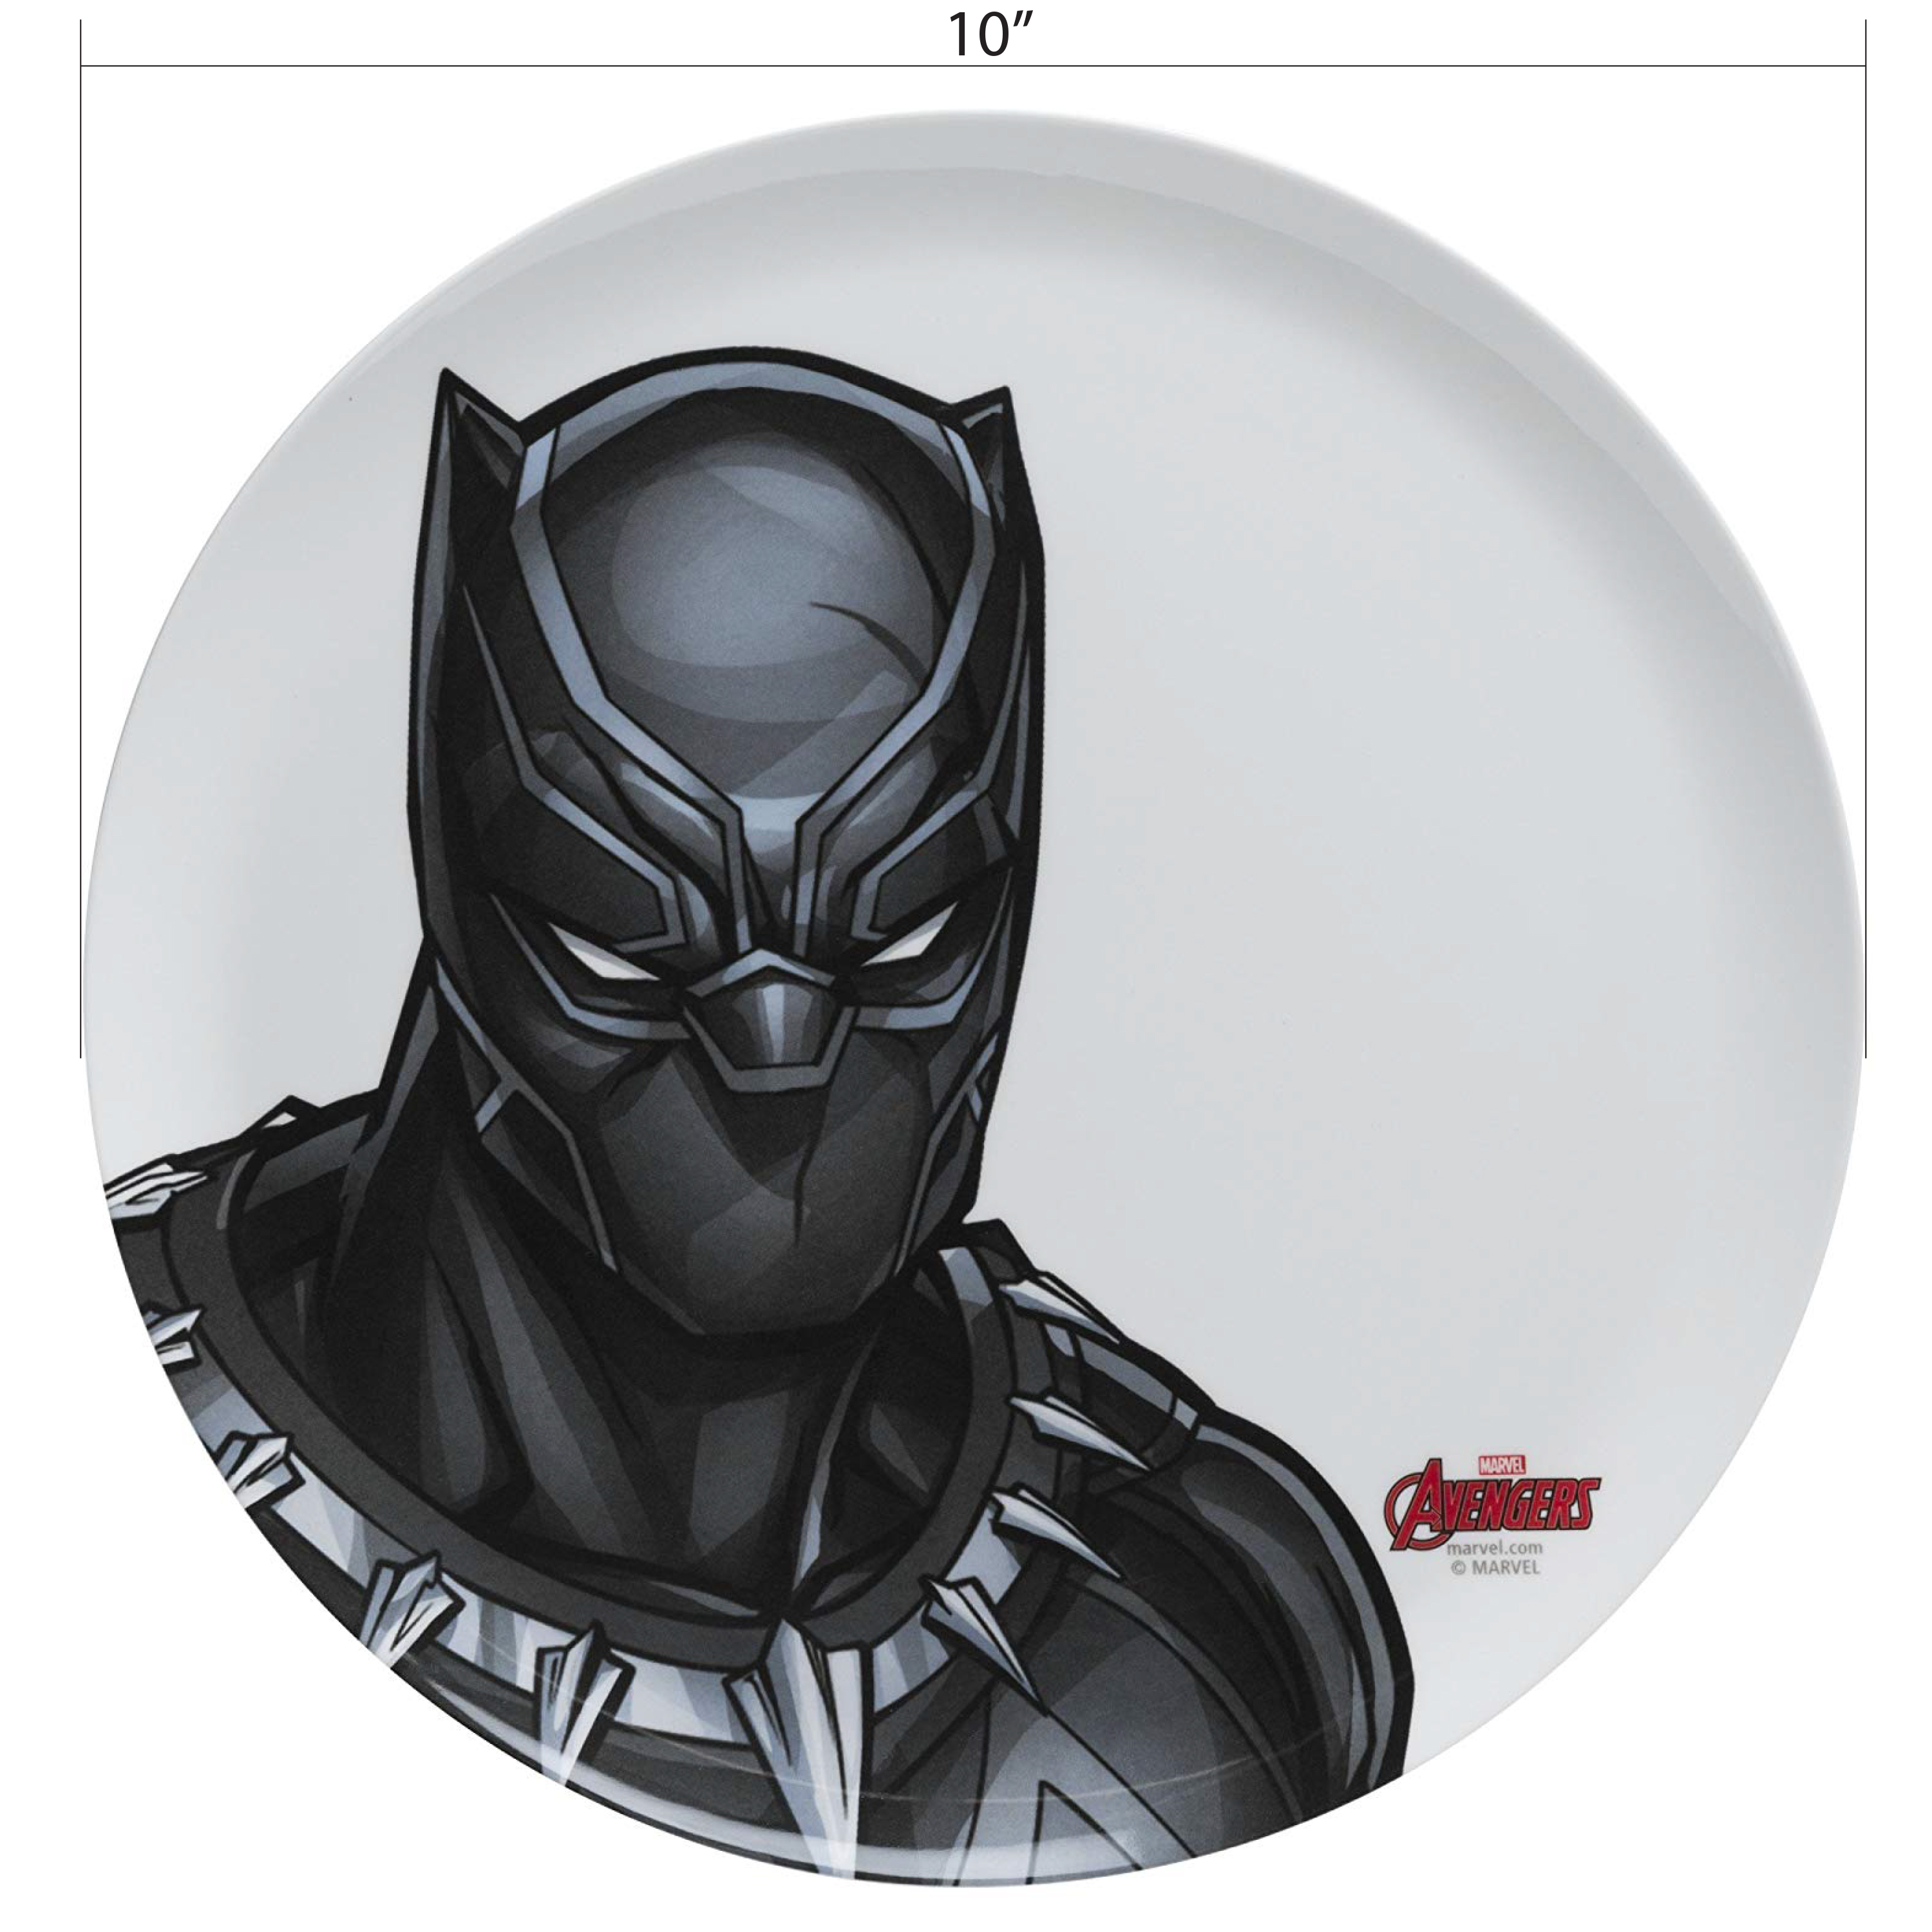 Marvel Comics Dinnerware Set, Black Panther & The Avengers, 2-piece set slideshow image 8